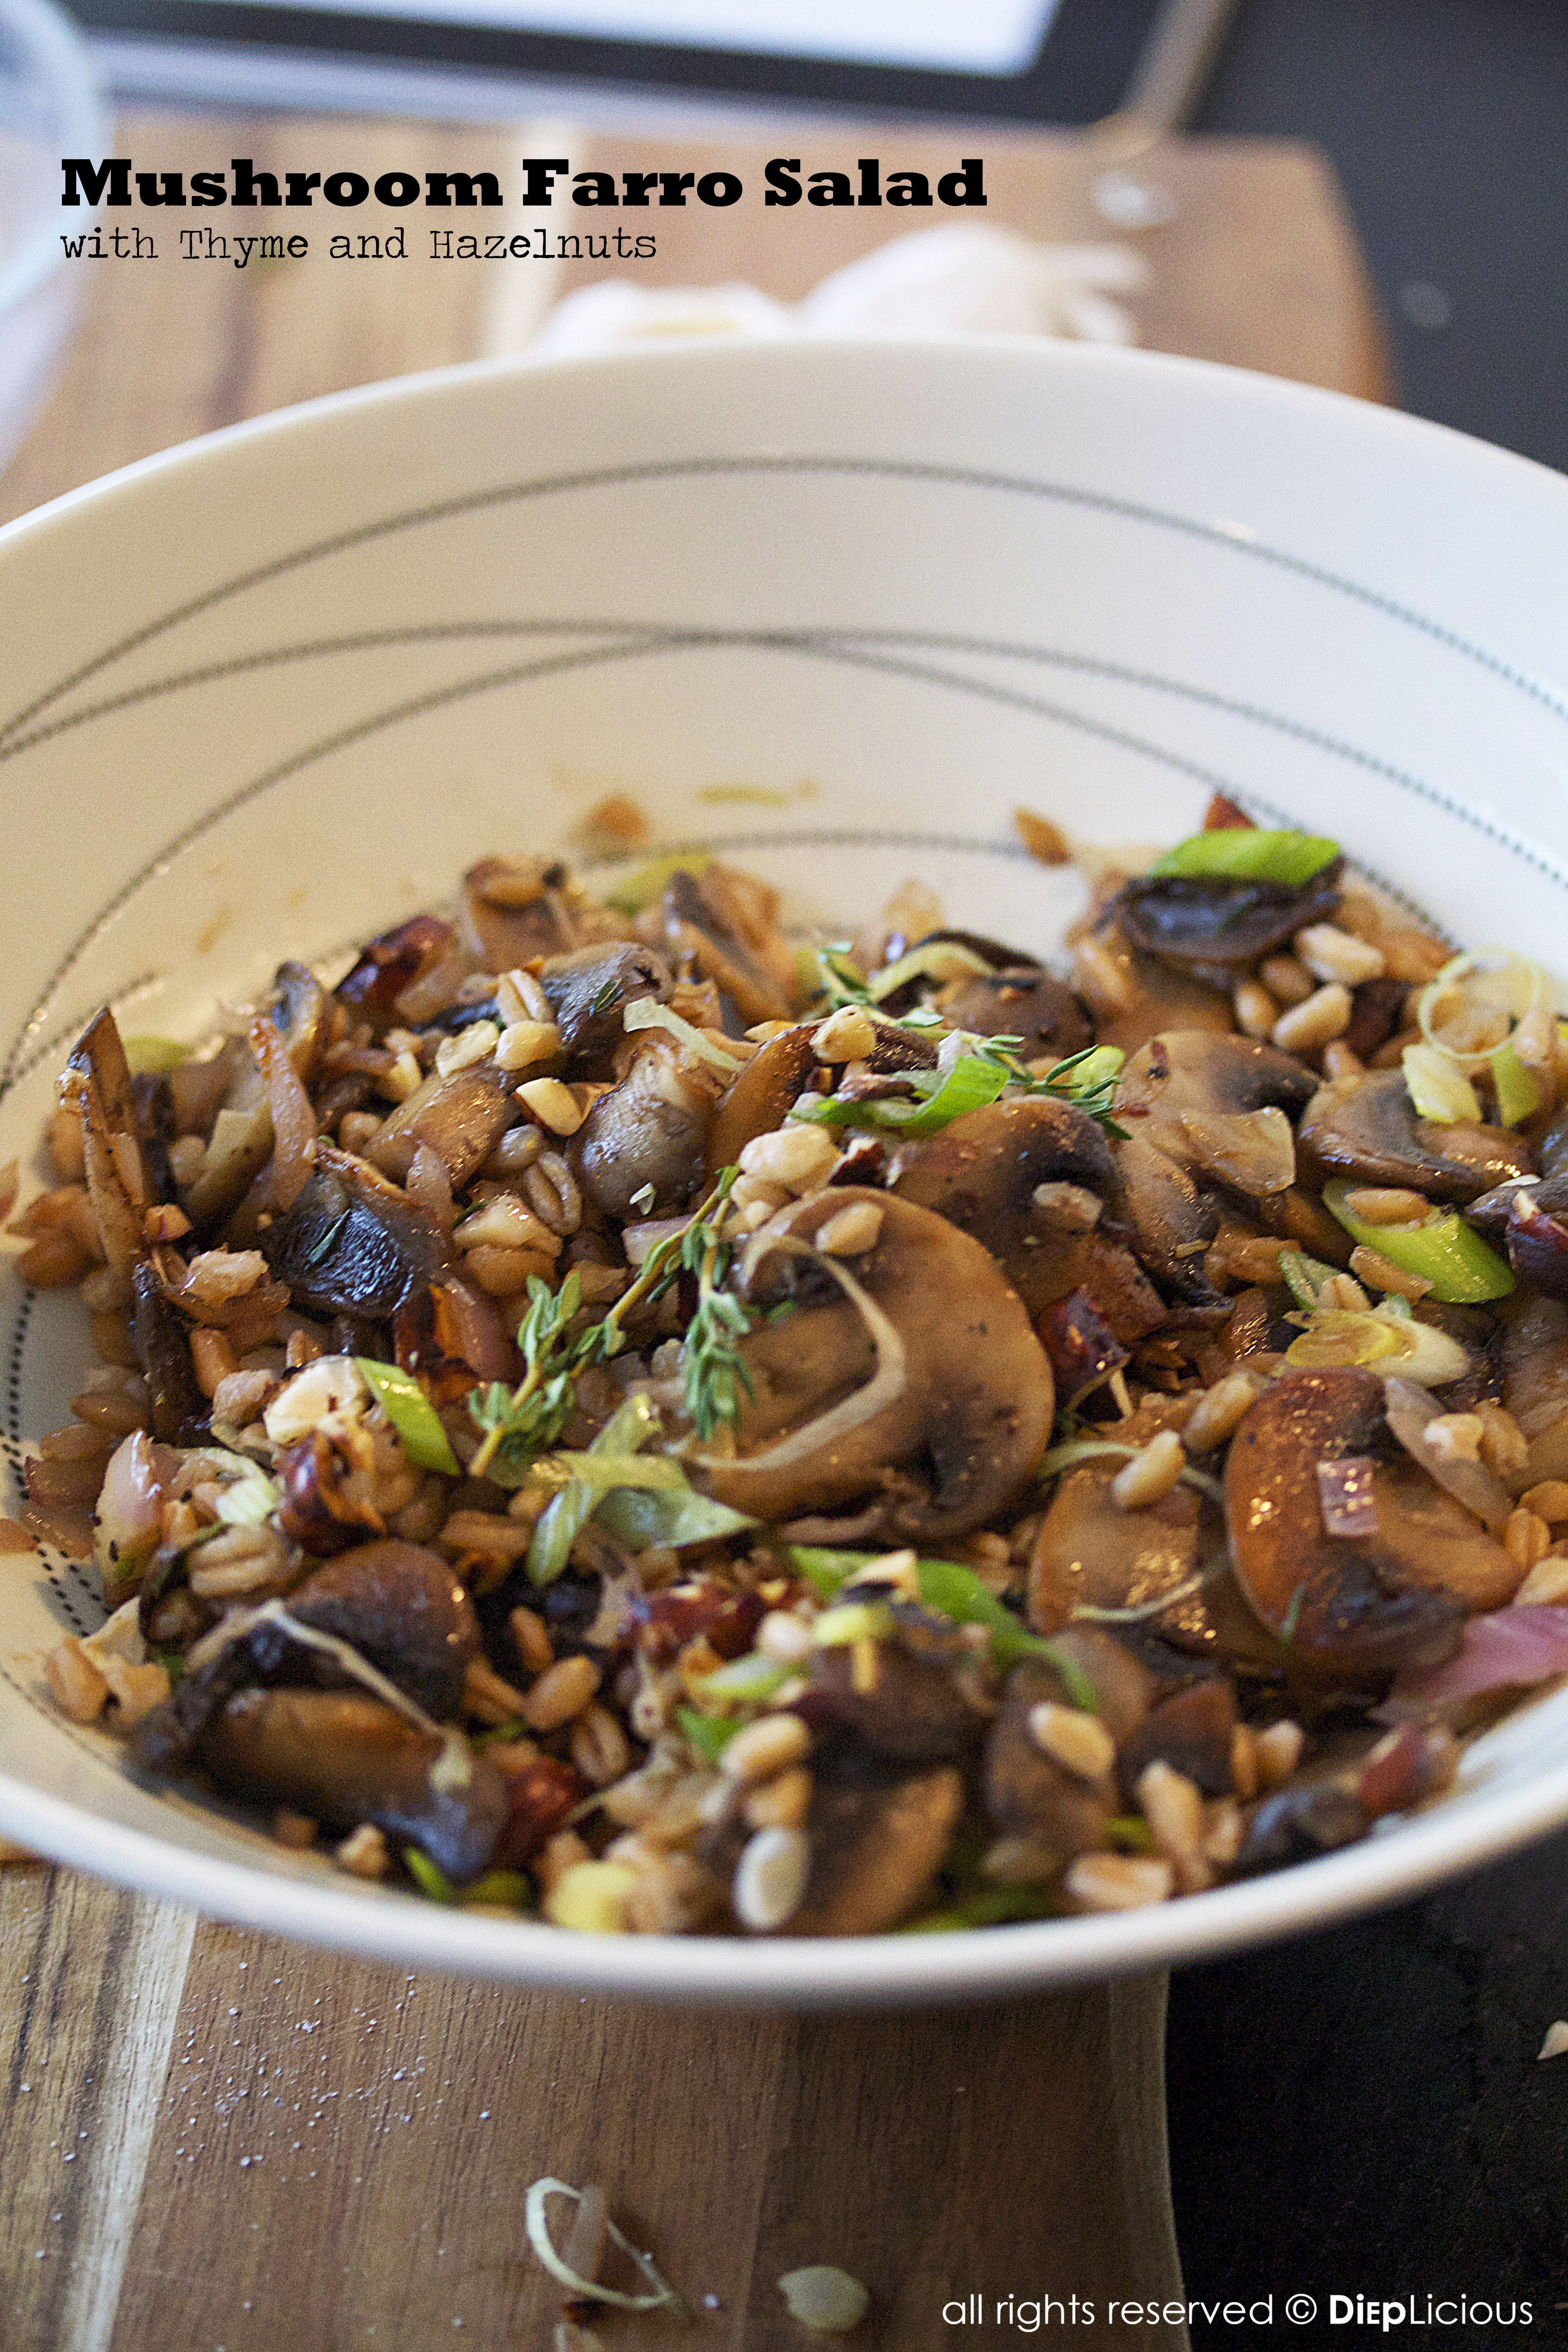 DiepLiciousMUSHROOM FARRO SALAD WITH THYME AND HAZELNUTS - DiepLicious